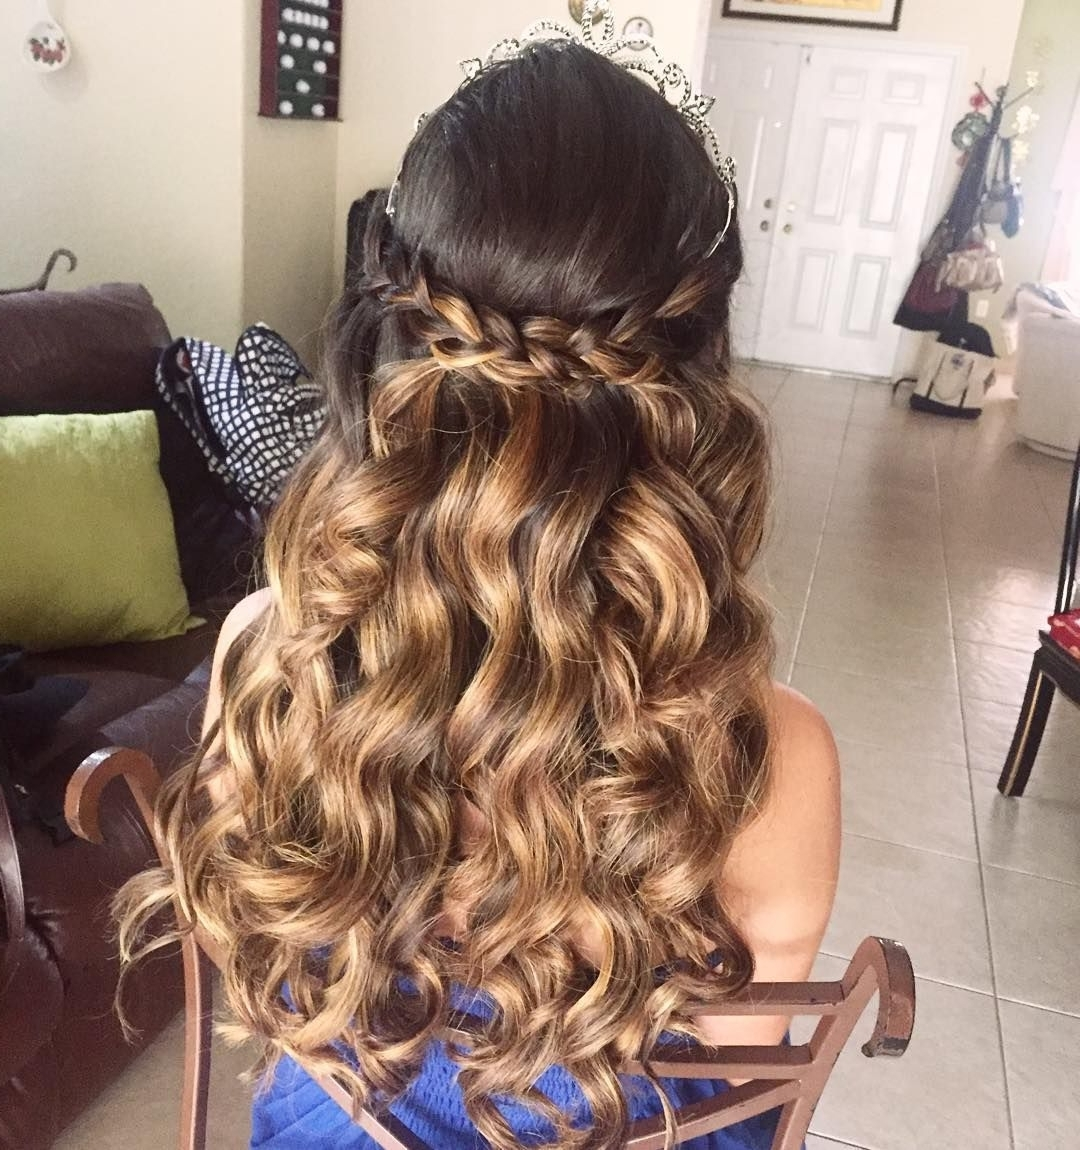 Fashionable Braided Quinceaneras Hairstyles Within Ideastyles For Quinceaneras Pictures Simple With Hair Down Short (View 6 of 15)